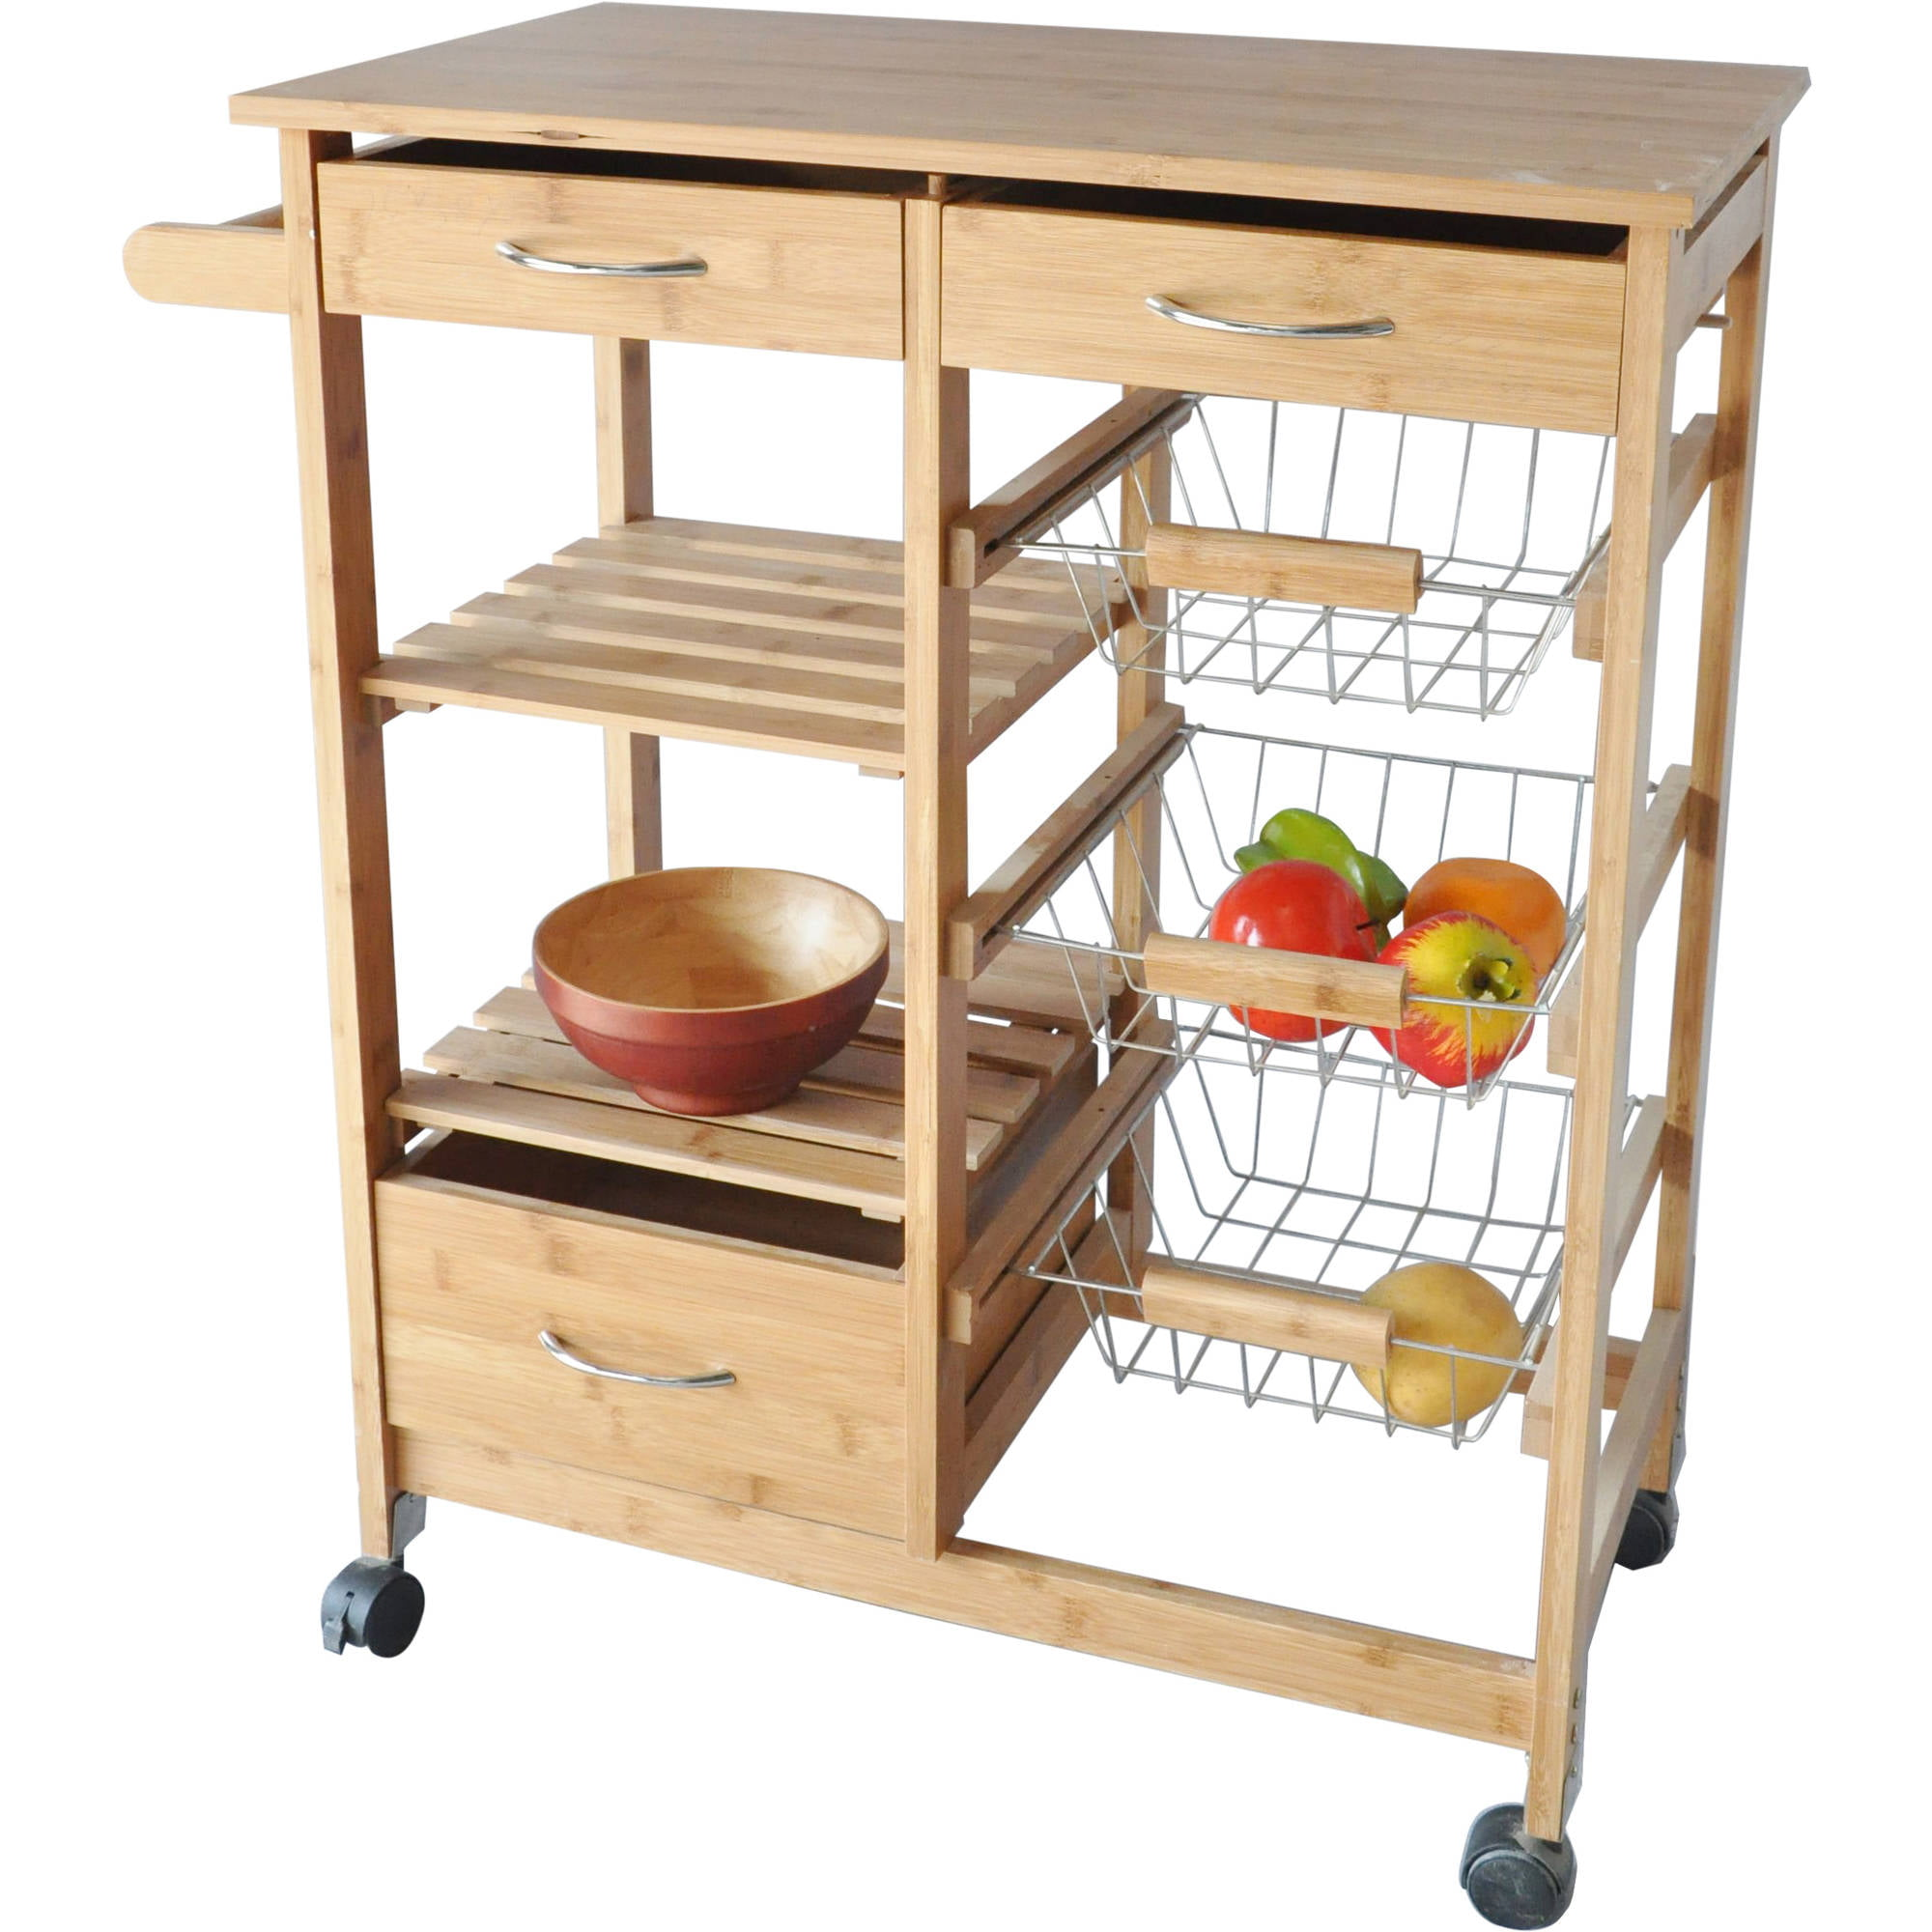 Costway 4 Tier Rolling Wood Kitchen Trolley Island Cart Storage